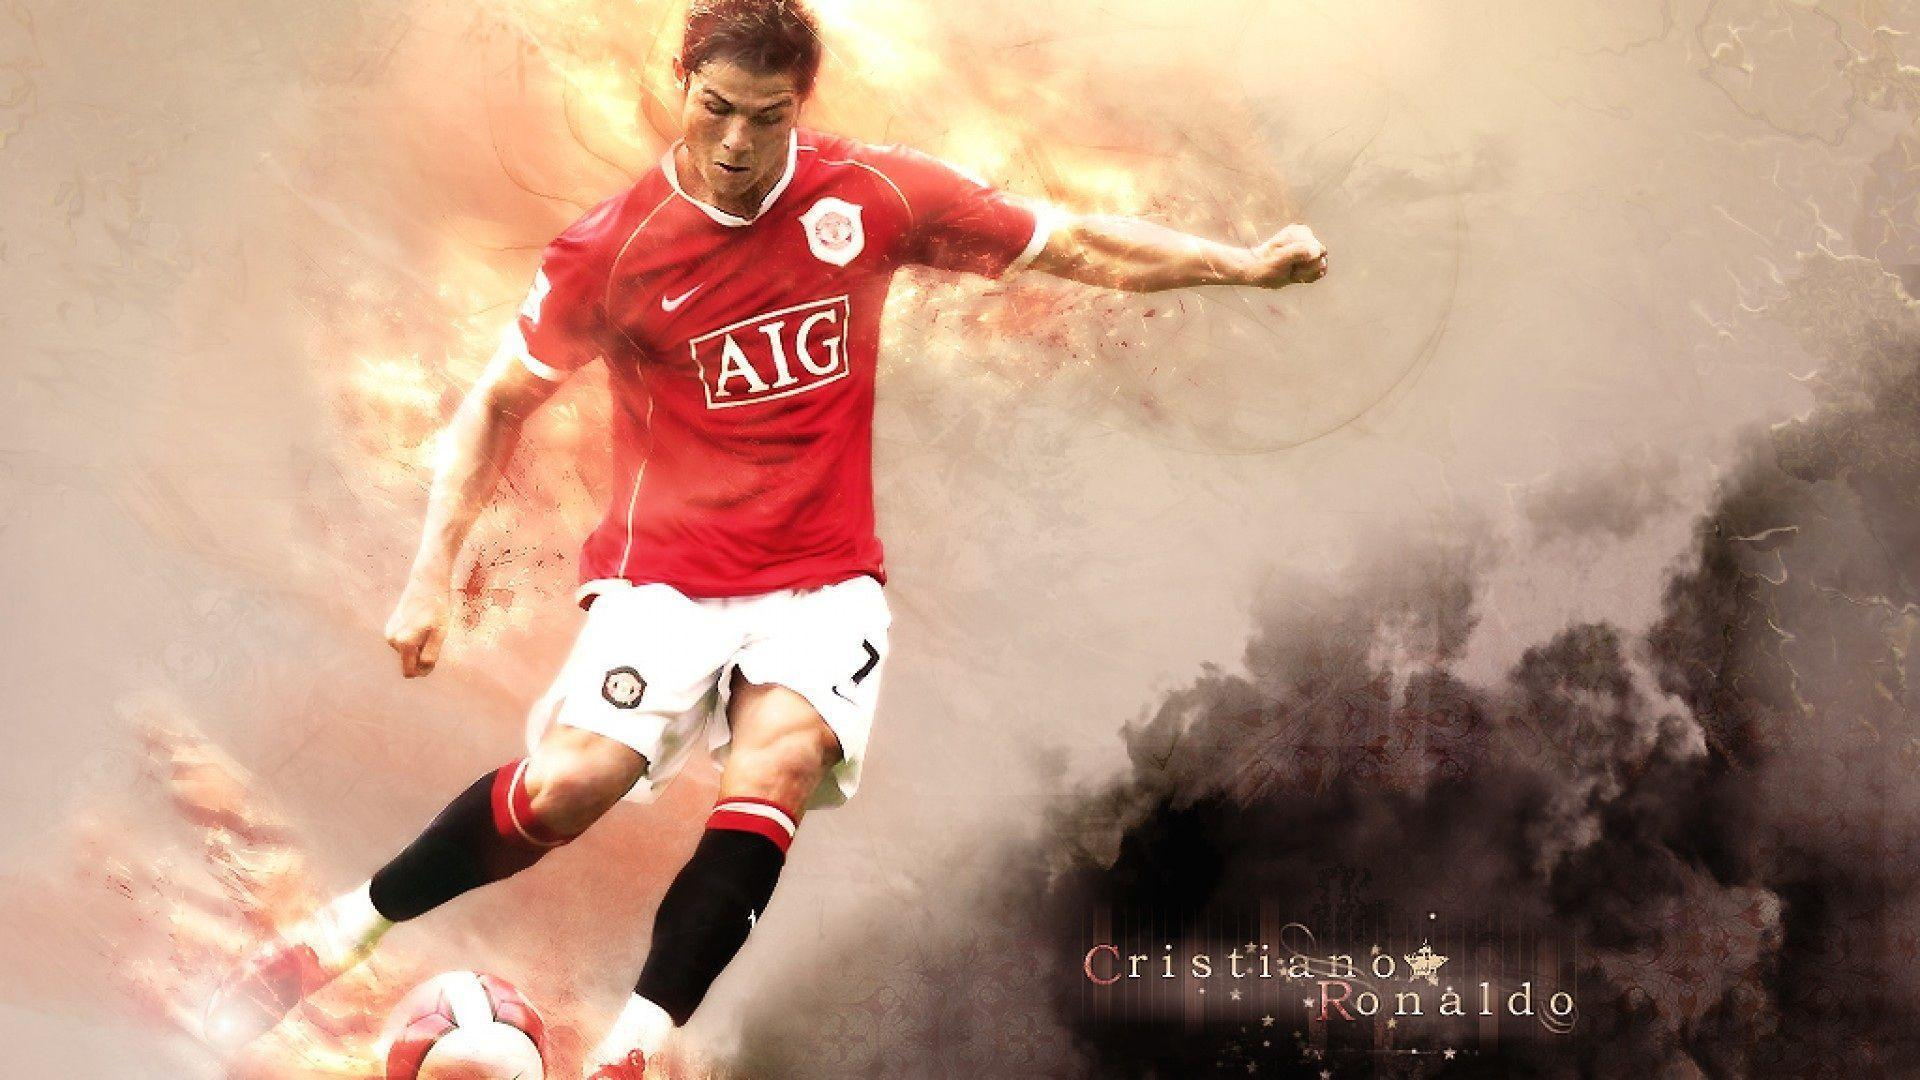 Cristiano Ronaldo Soccer Player Wallpaper | Sports | Pinterest ...